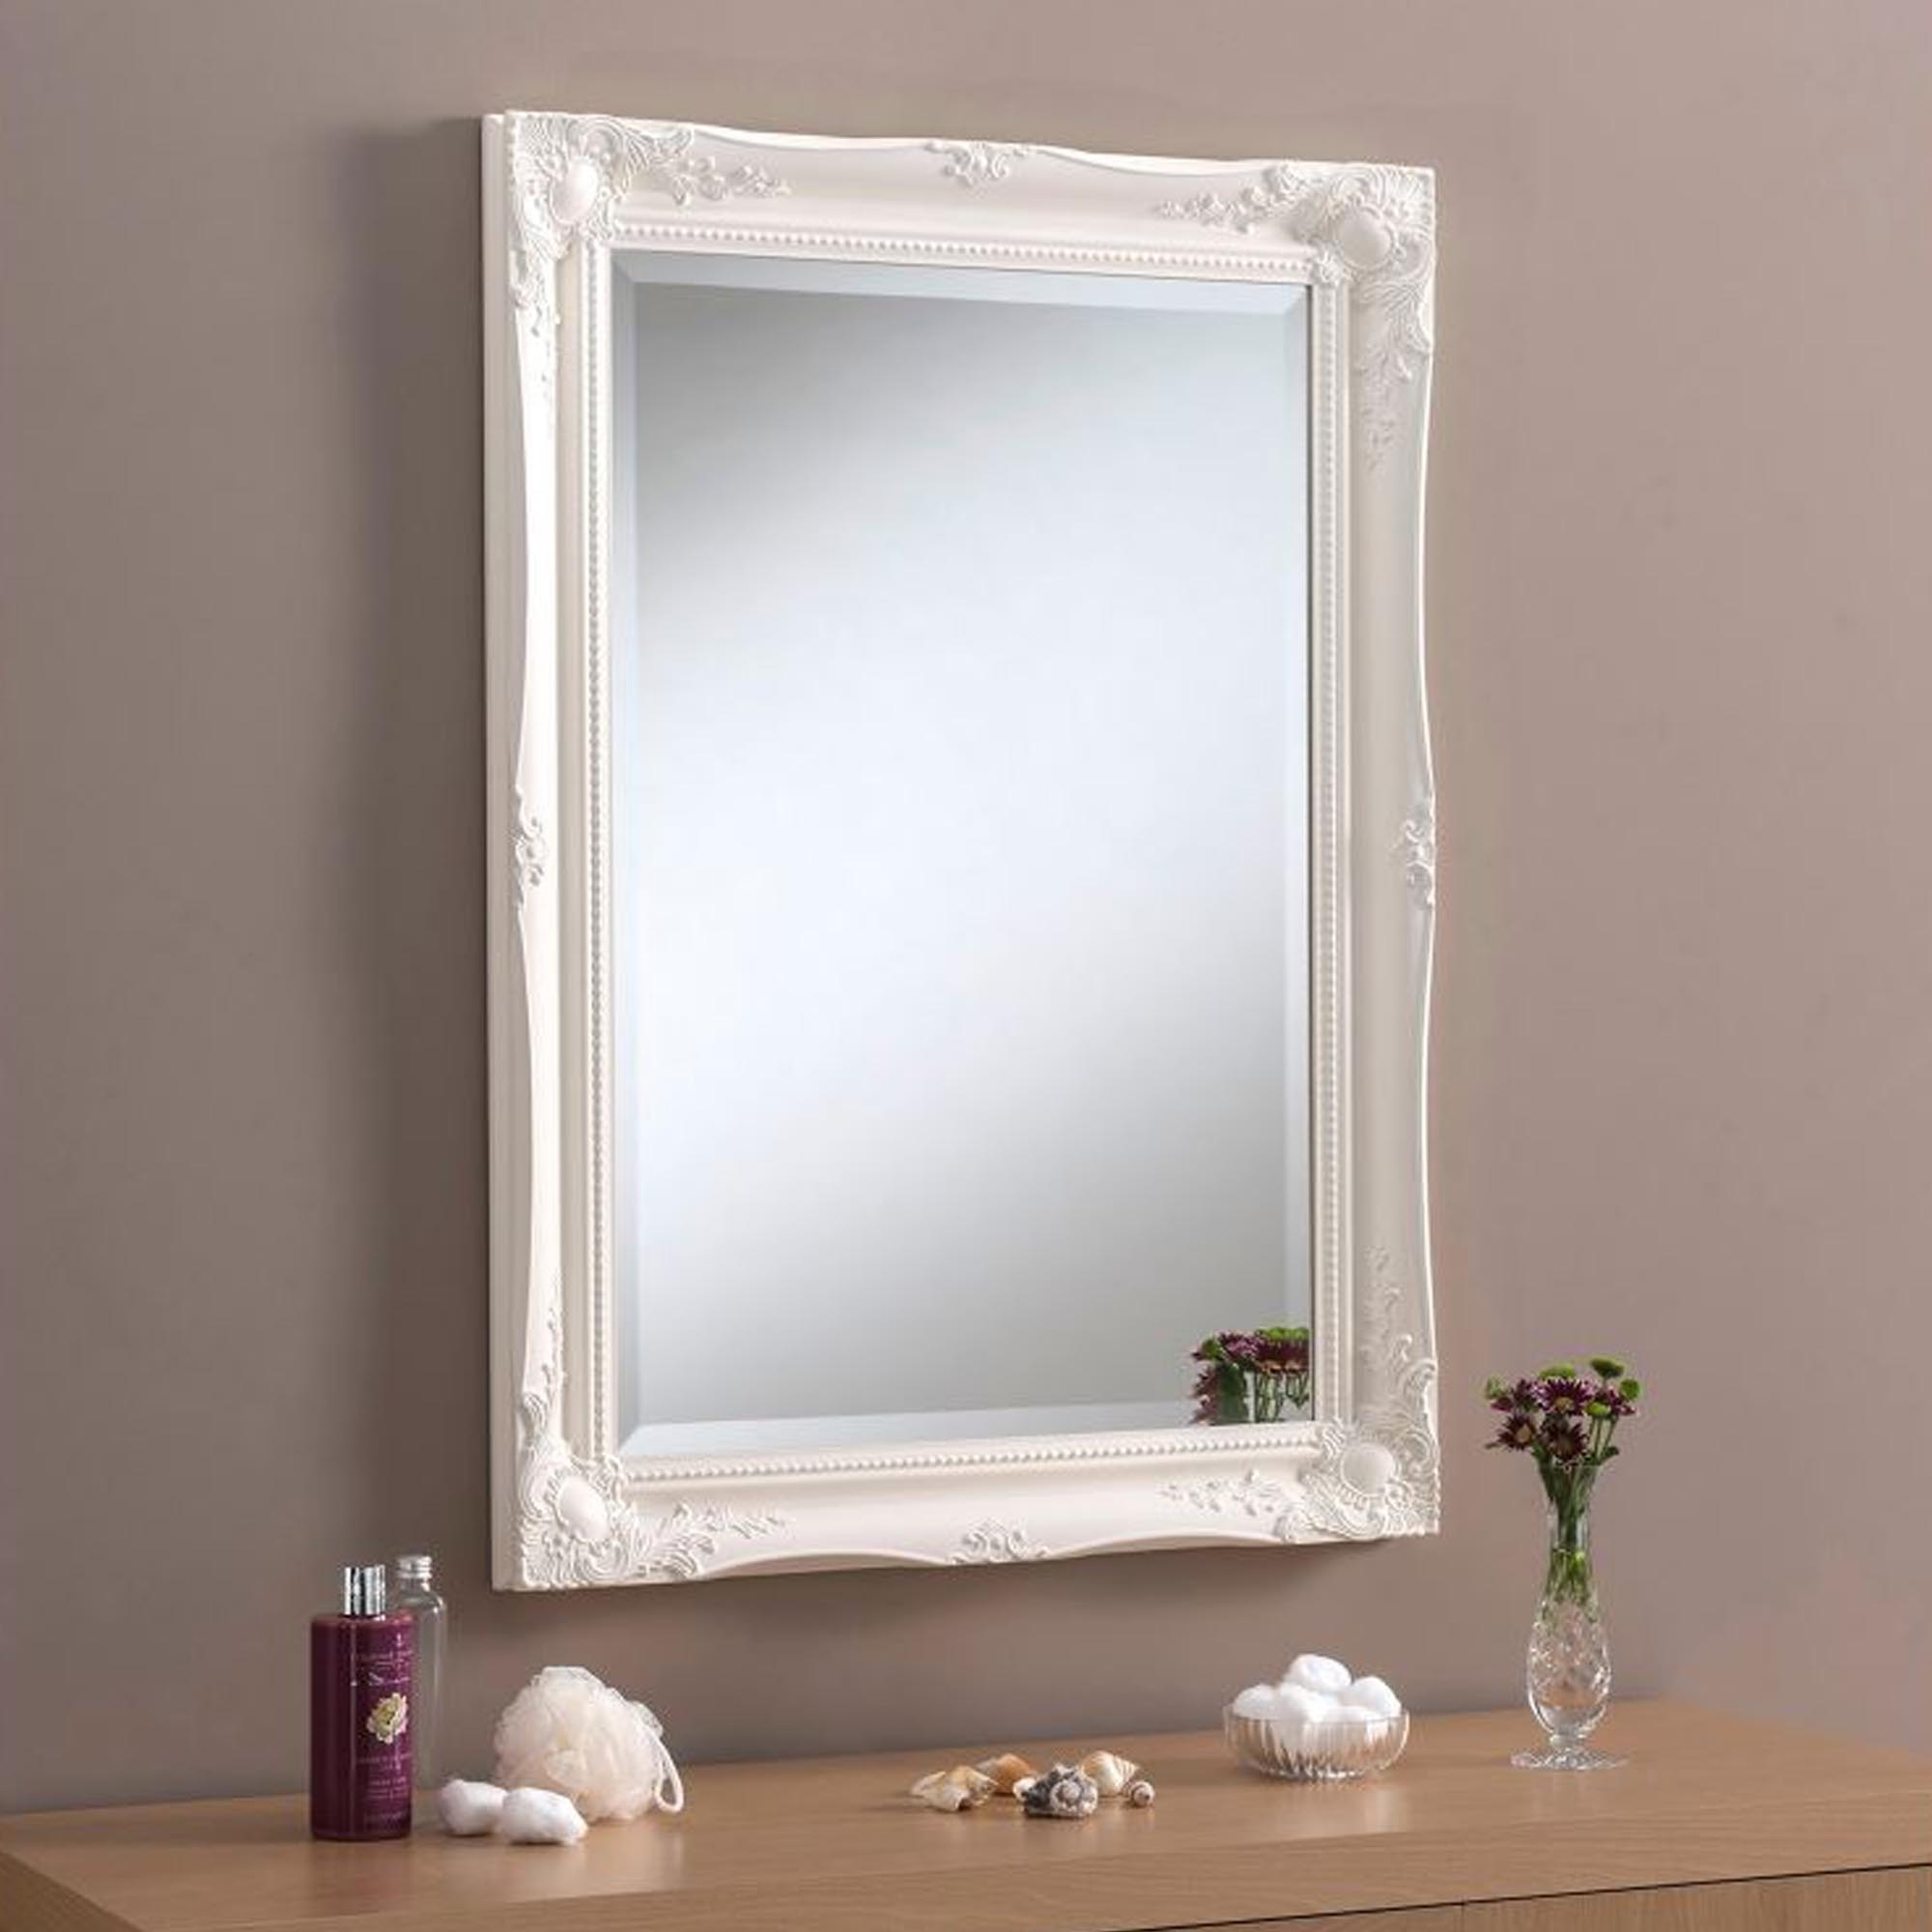 Decorative Ornate Antique French Style White Wall Mirror With Most Recent Antique White Wall Mirrors (View 10 of 20)